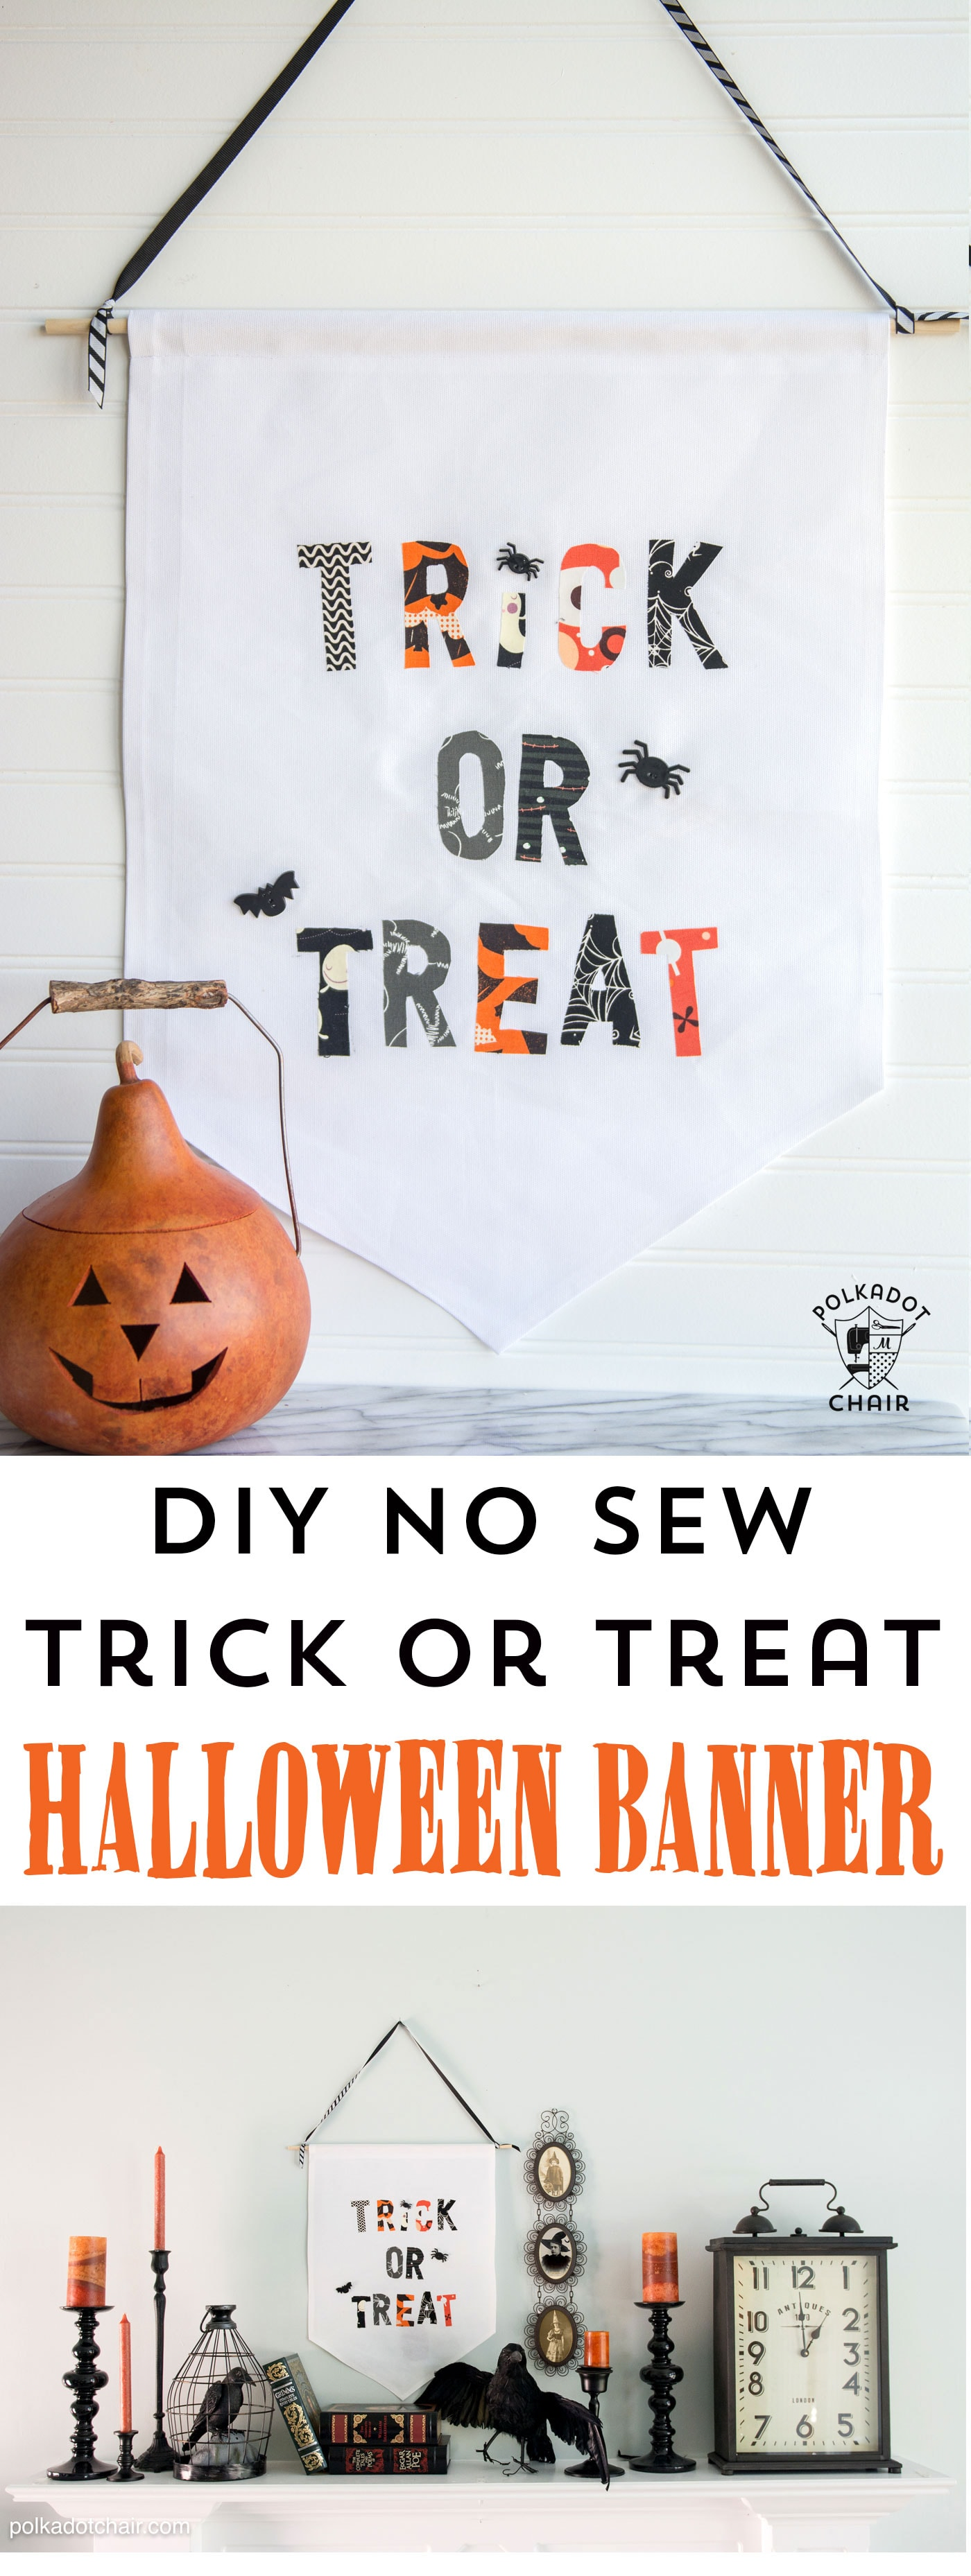 Diy Trick Or Treat Halloween Banner The Polka Dot Chair